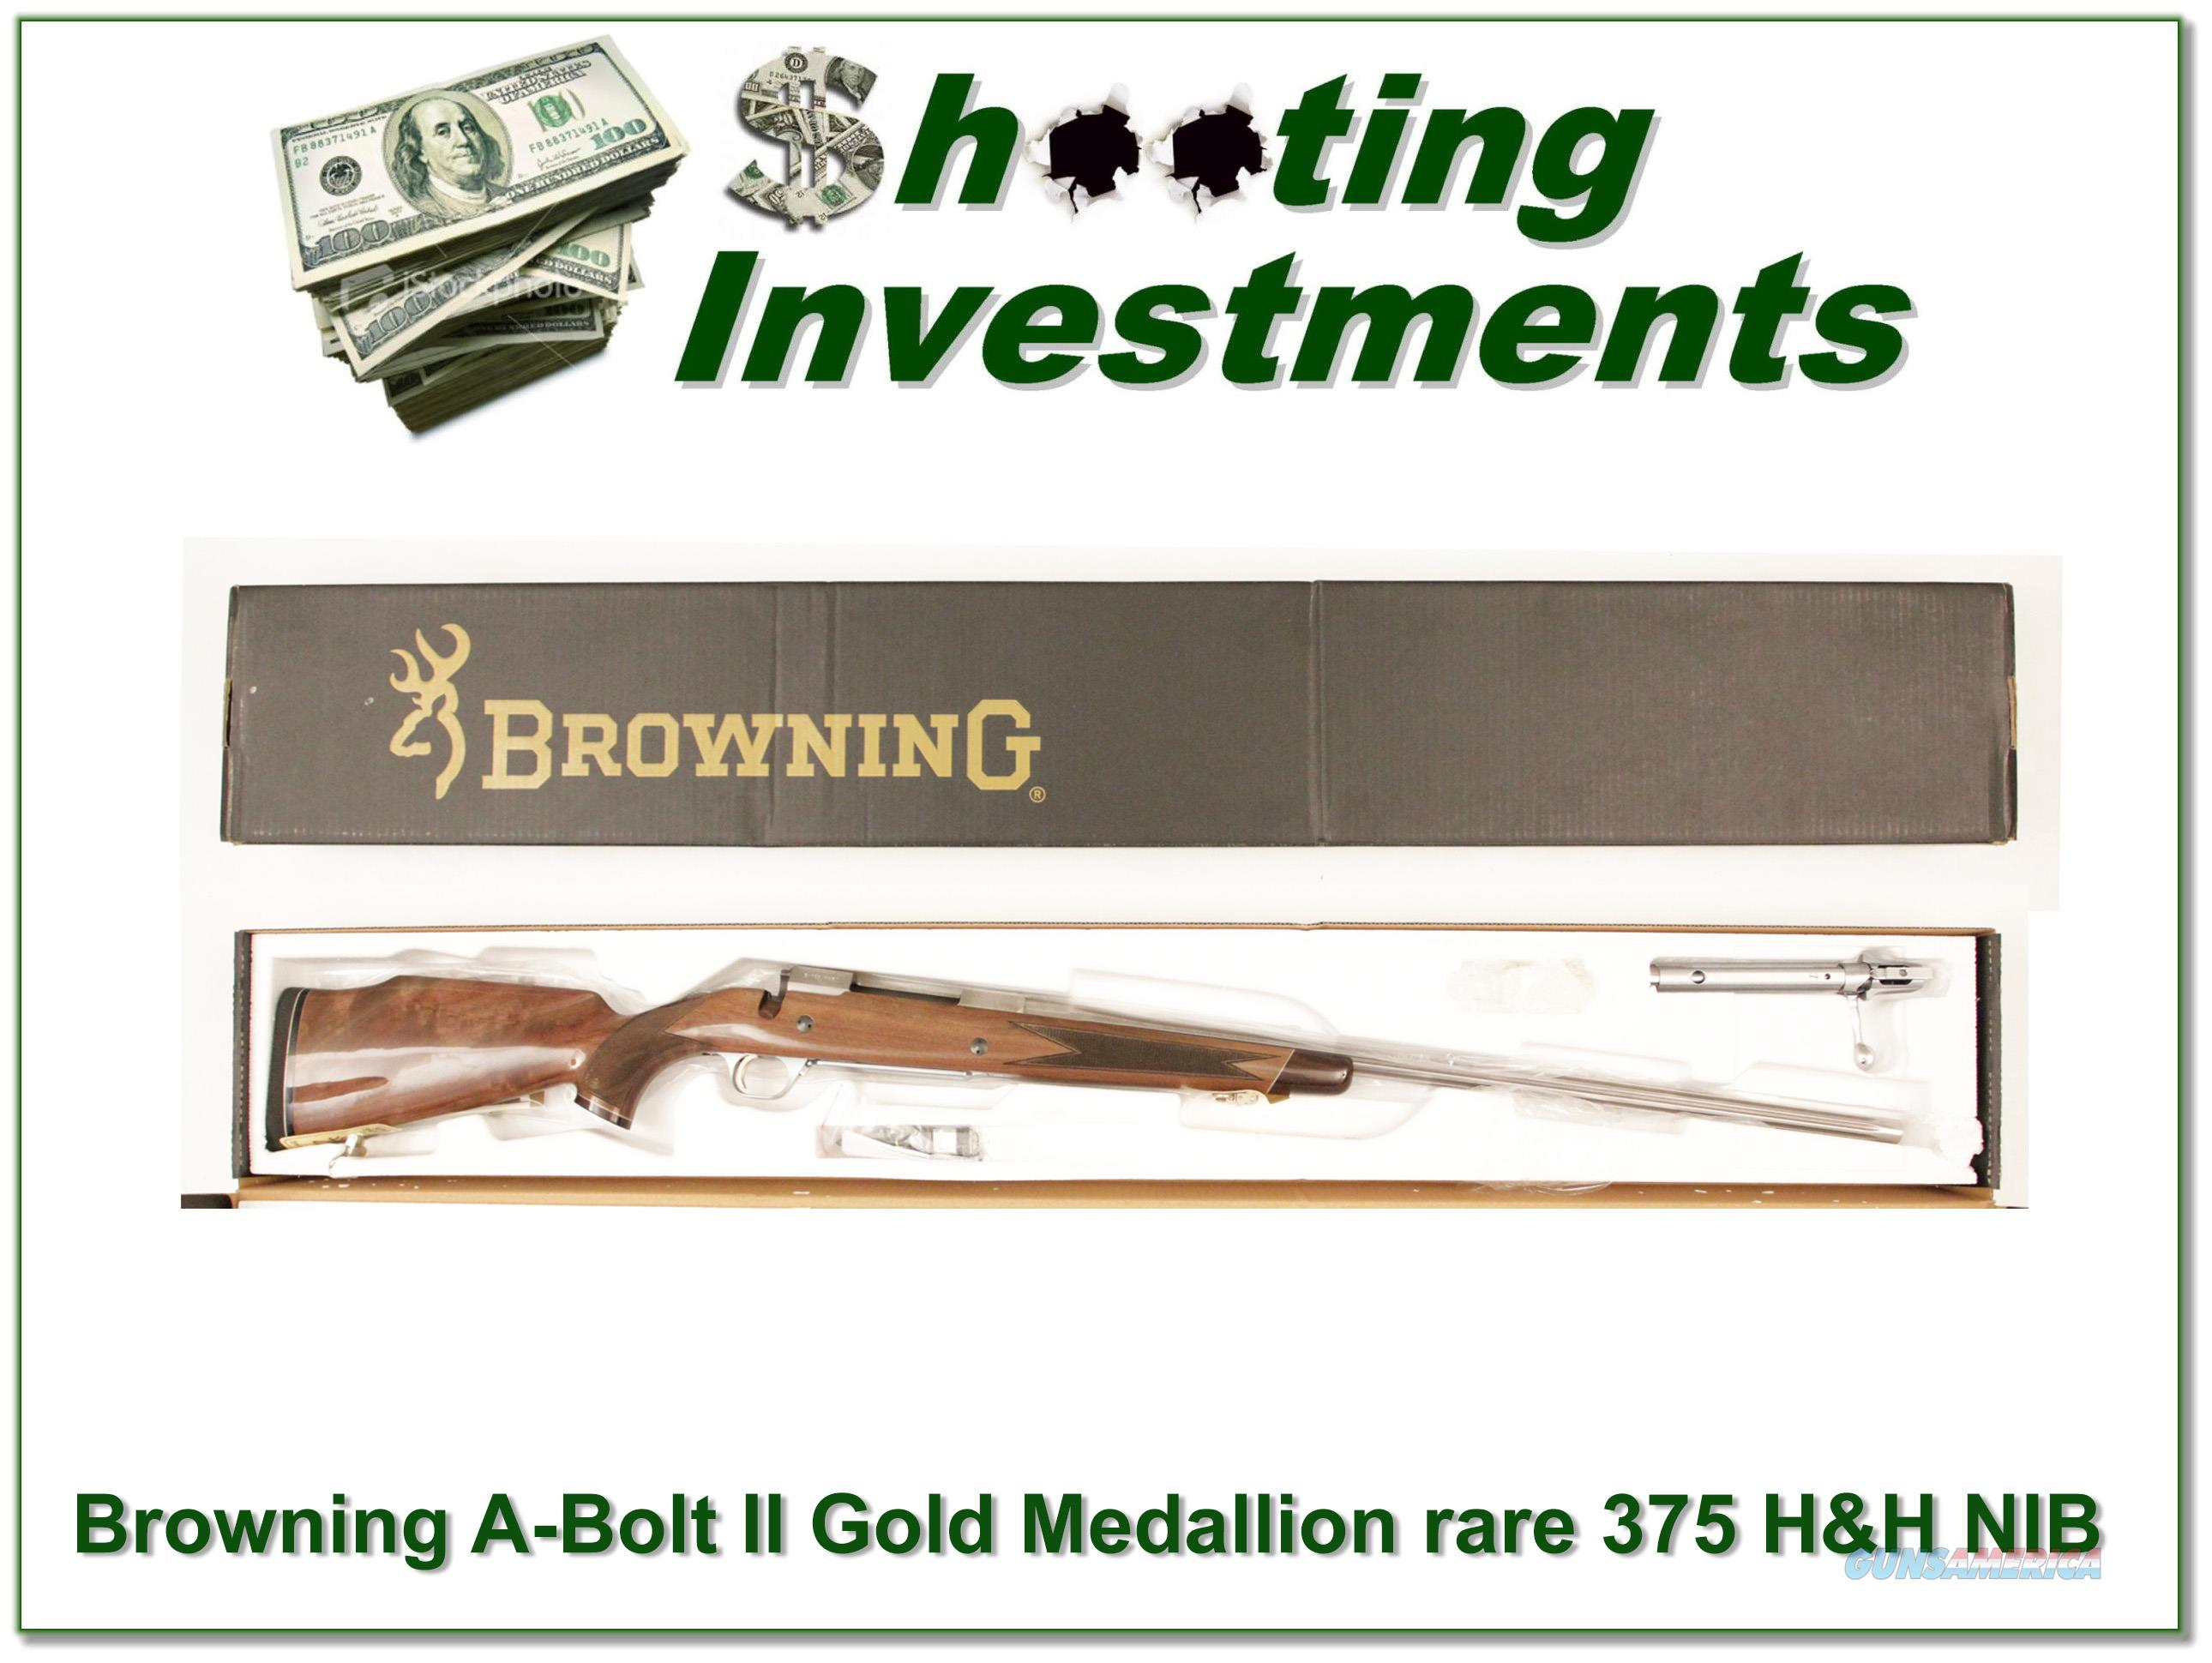 Browning A-bolt White Gold Medallion NIB Rare 375 H&H  Guns > Rifles > Browning Rifles > Bolt Action > Hunting > Stainless